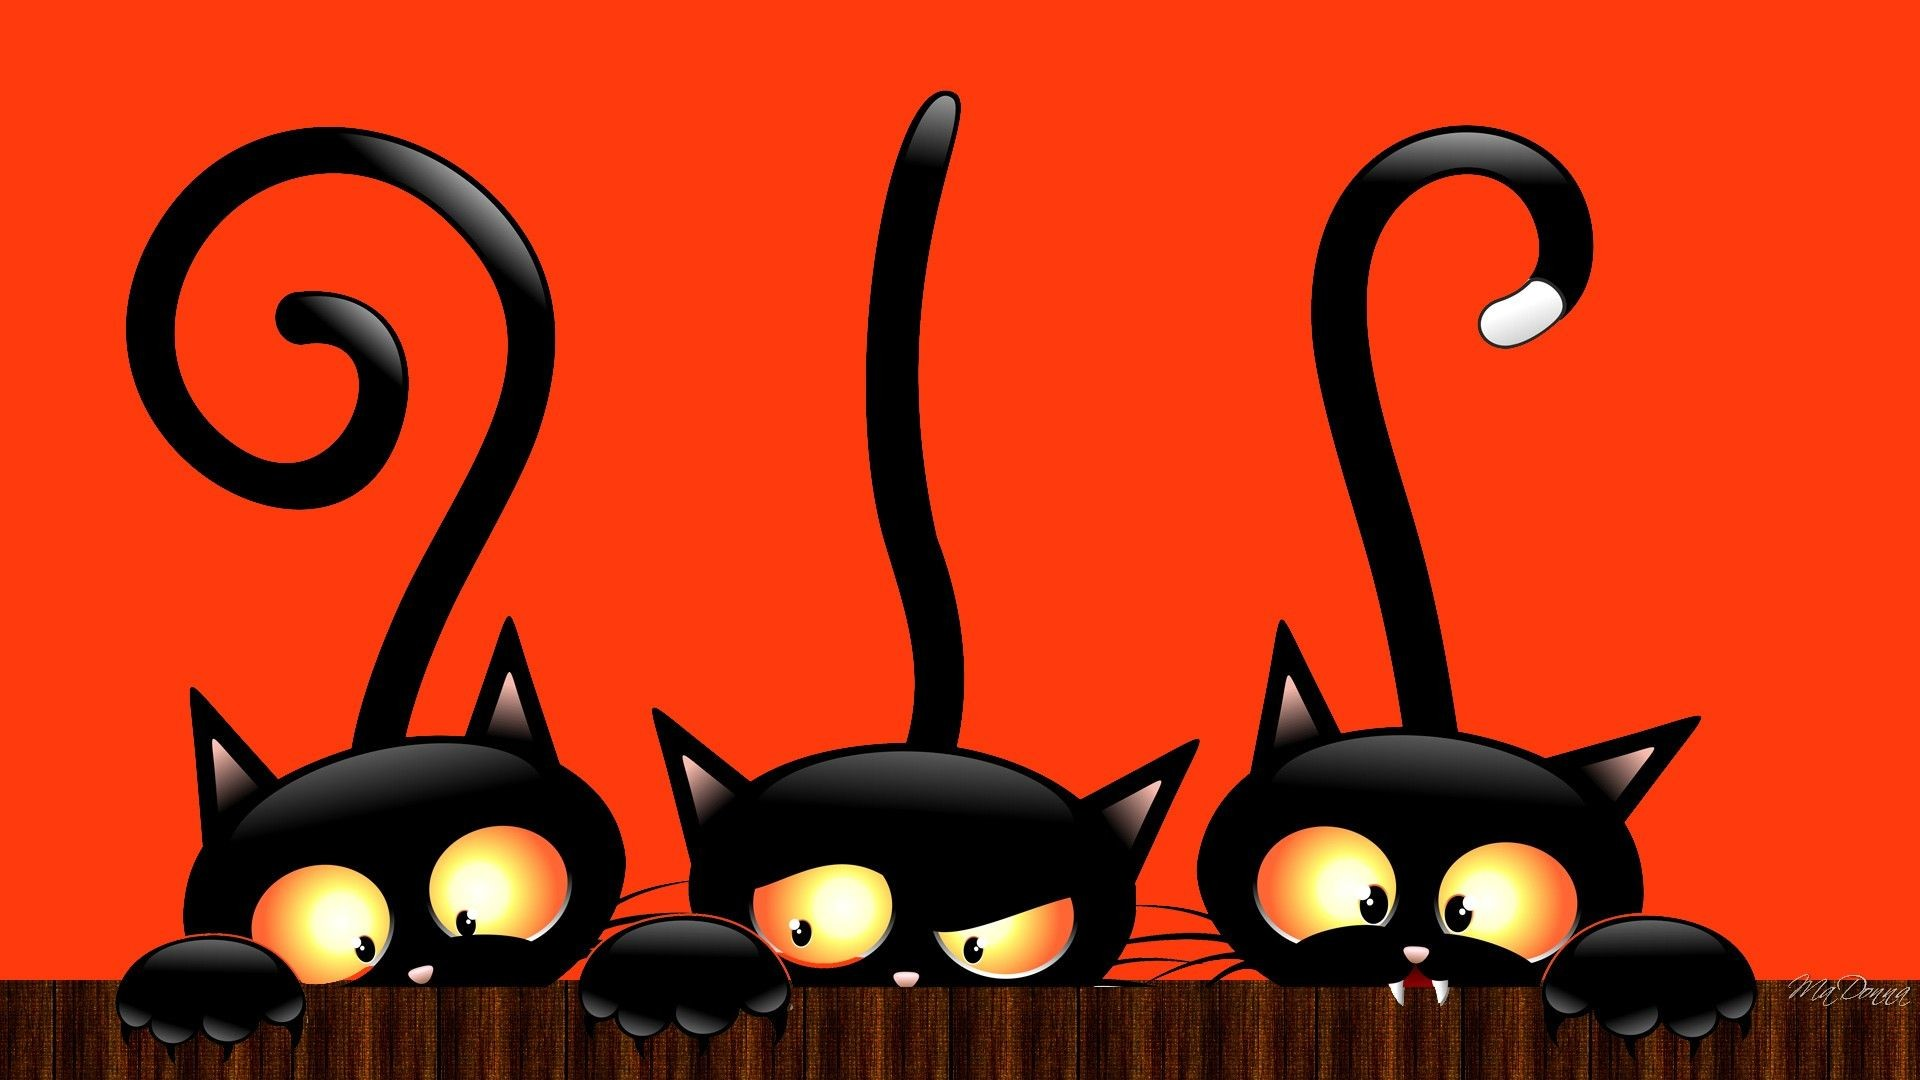 1920x1080 Download 50 Cute and Happy Halloween Wallpapers HD for Free